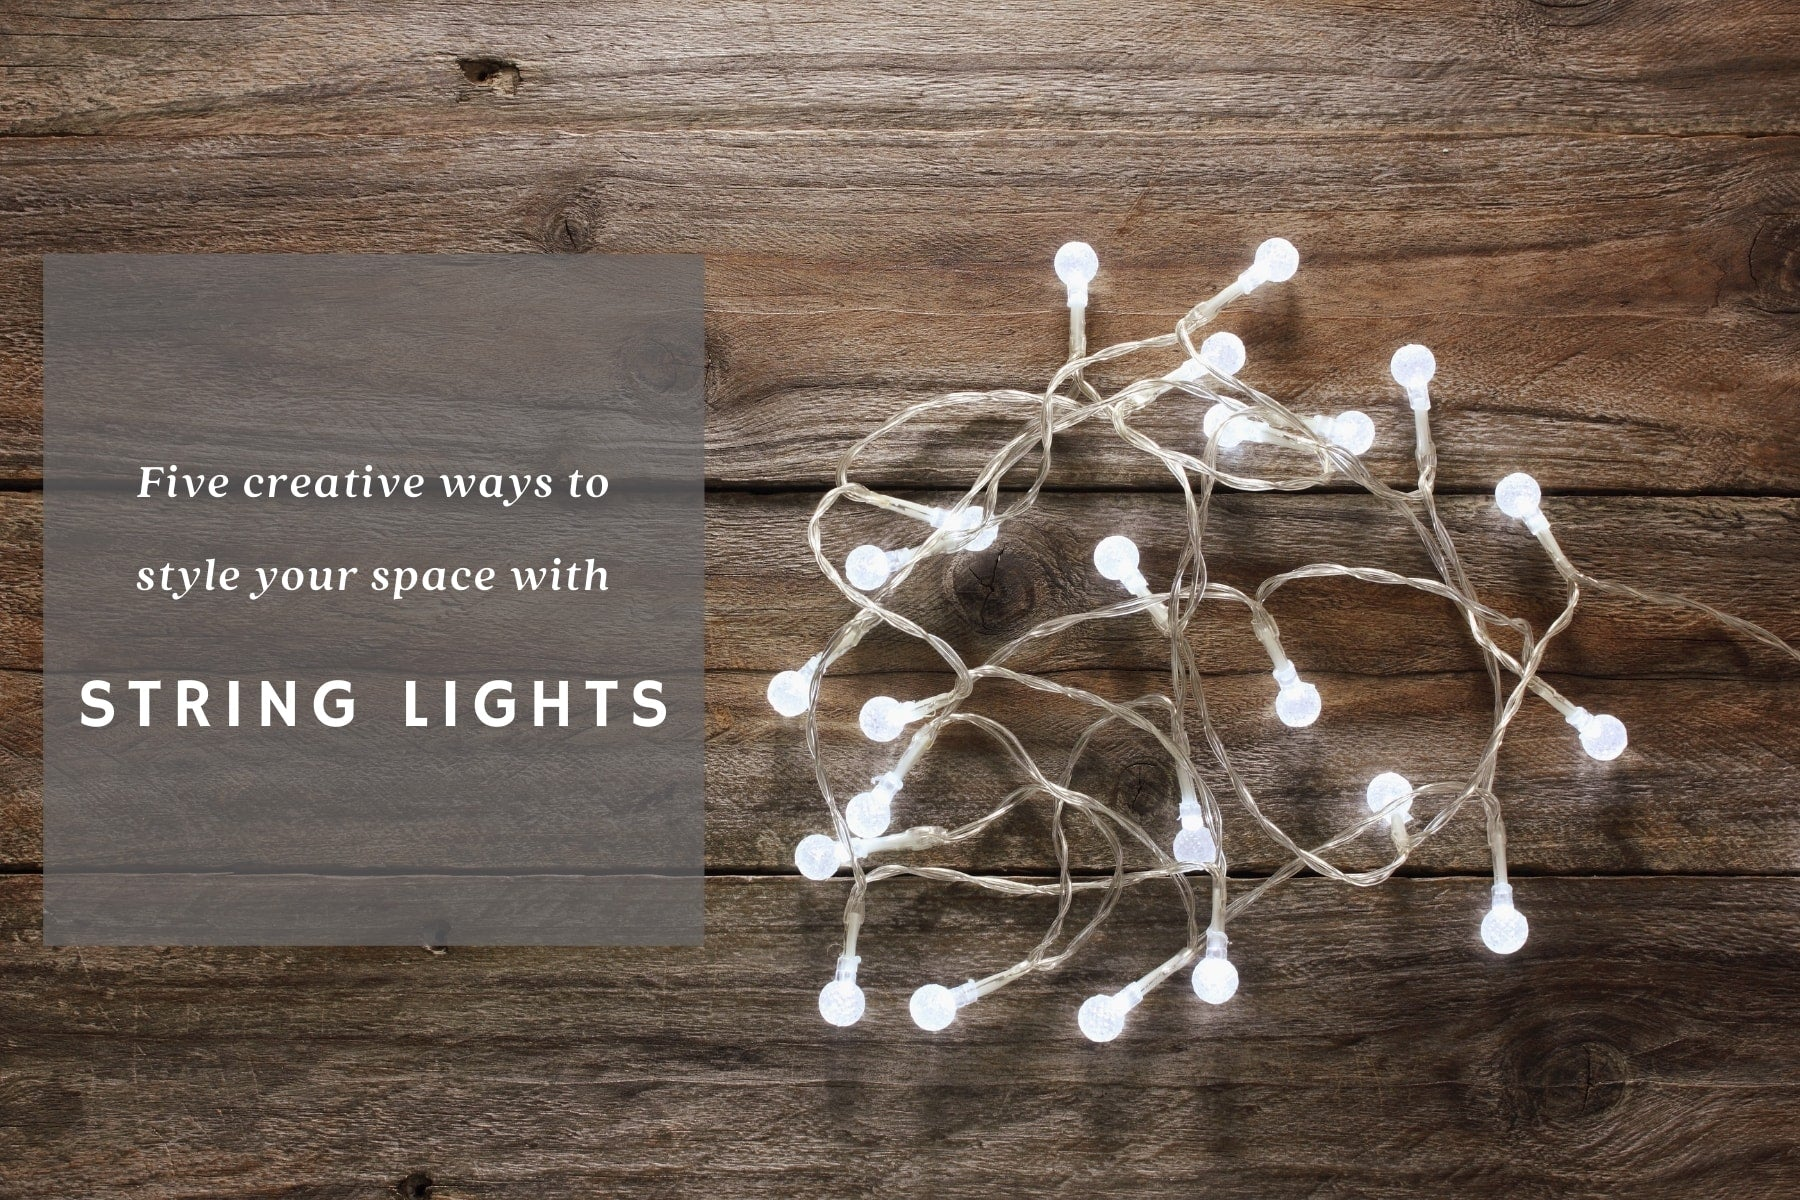 Five Creative Ways to Style Your Space with String Lights